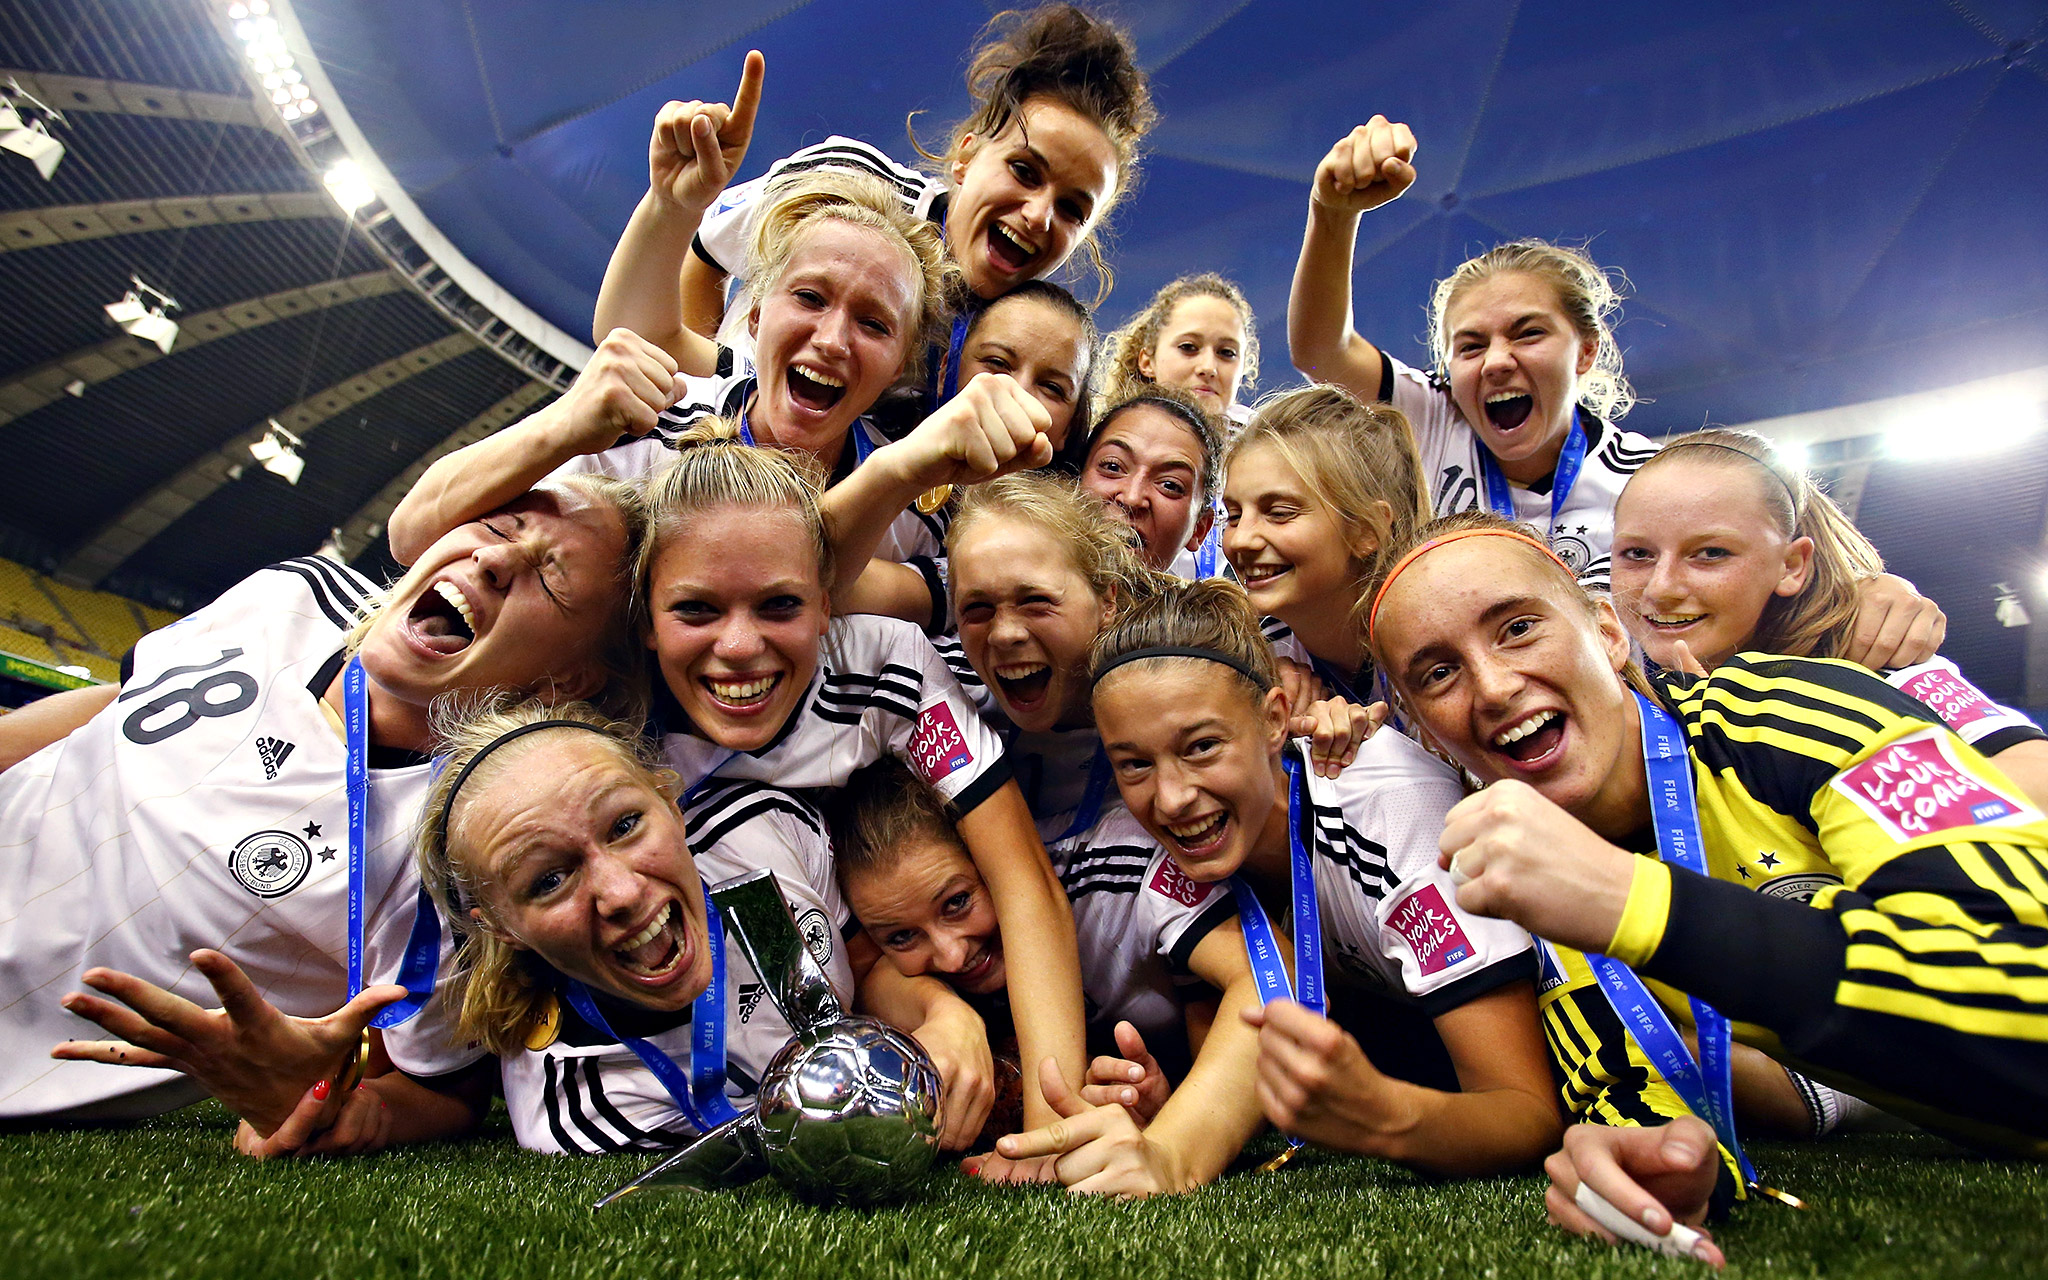 Party! Players from Germany let loose after beating Nigeria 1-0 in the eighth minute of extra time to win the U-20 Women's World Cup on Sunday in Montreal.